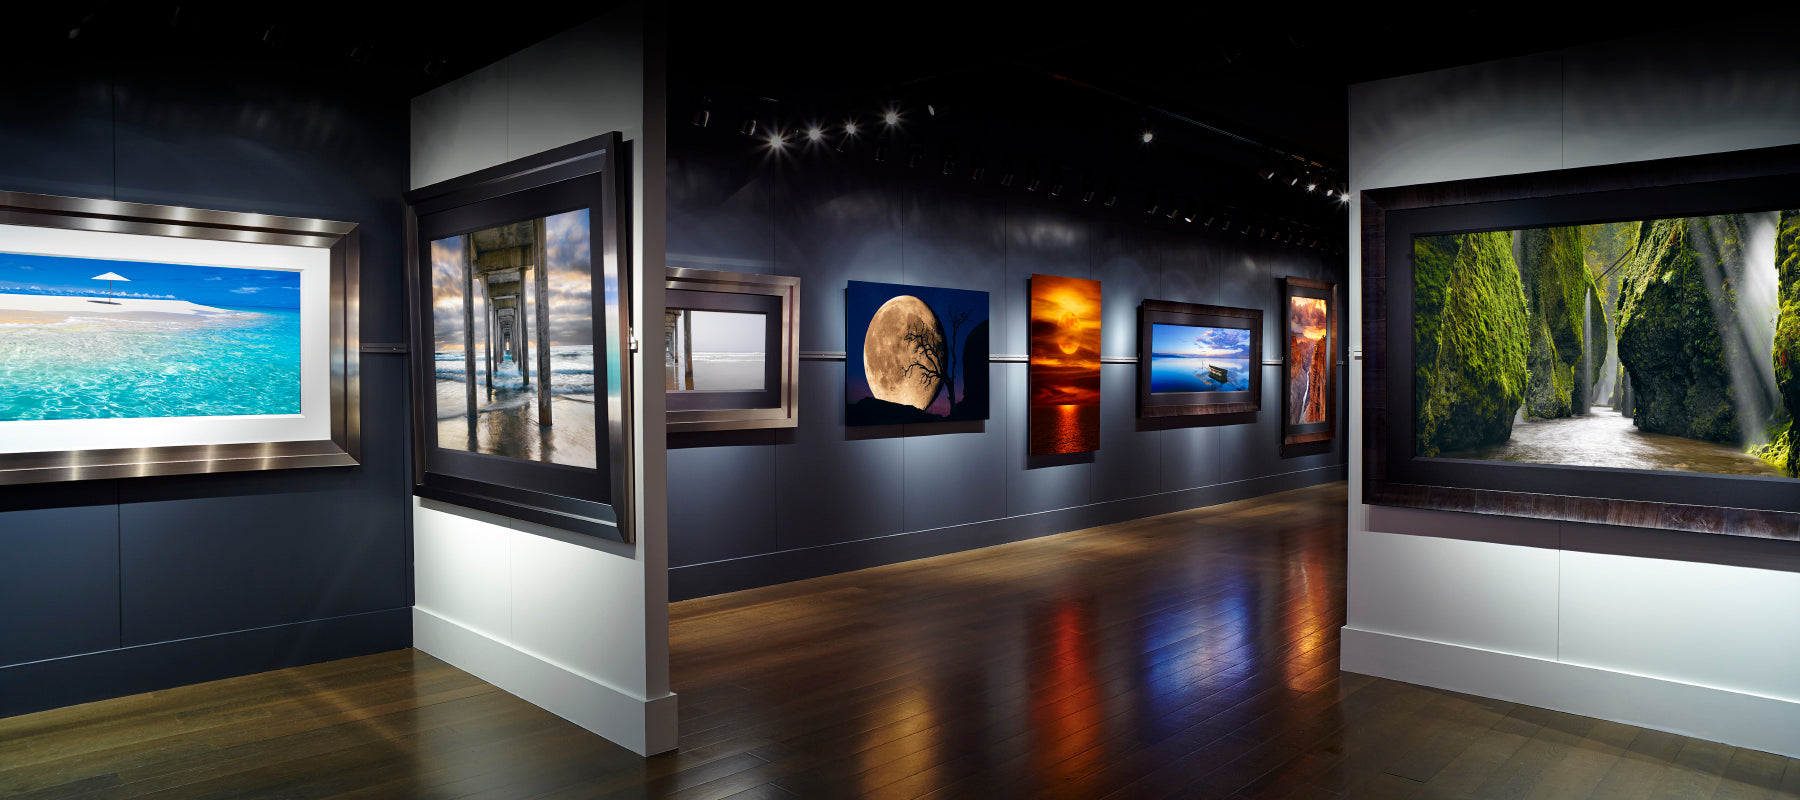 LIK Fine Art Gallery interior with white and gray walls and brown wood floors displaying framed photography by Peter Lik